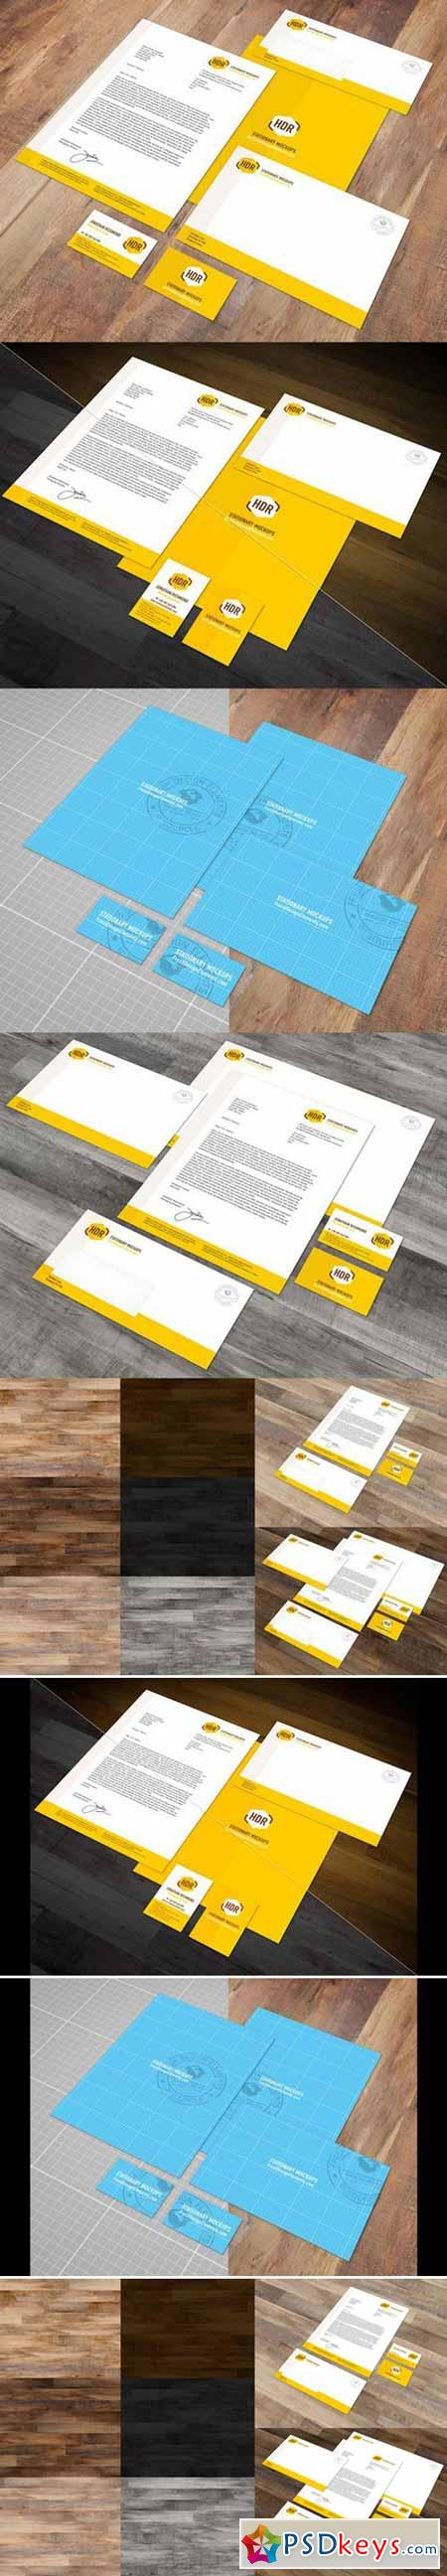 Euro Stationary Mockup Vol. 1 73201